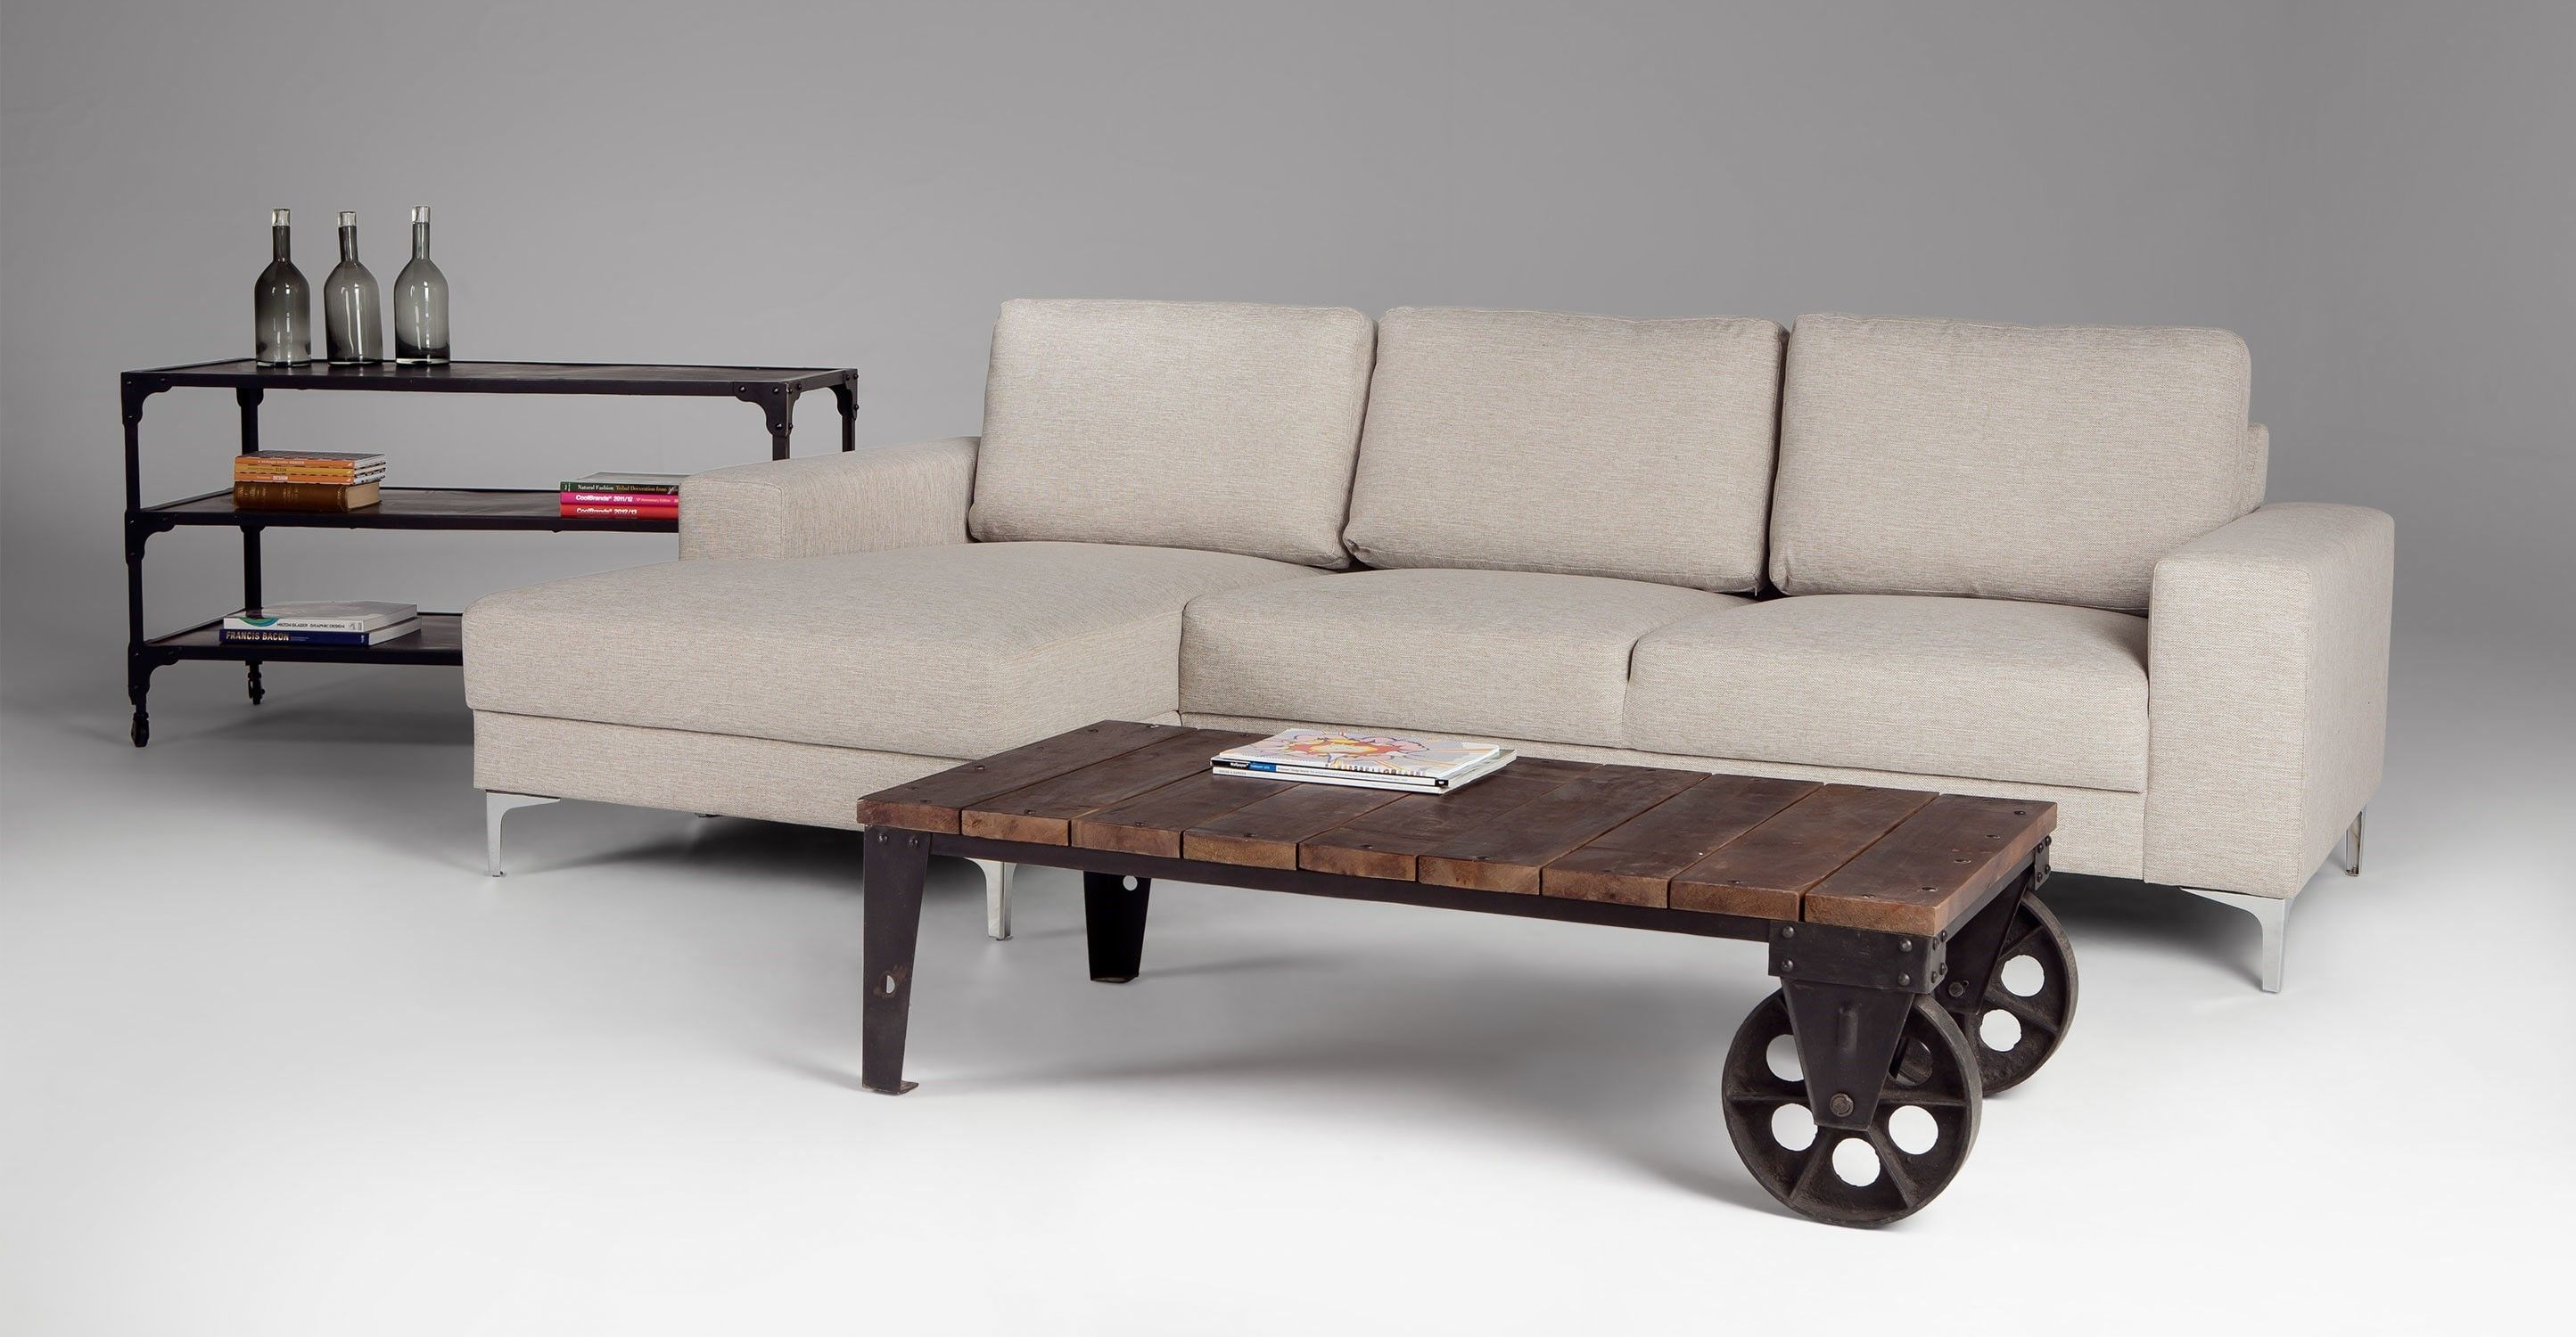 Superieur Small Industrial Style Coffee Table